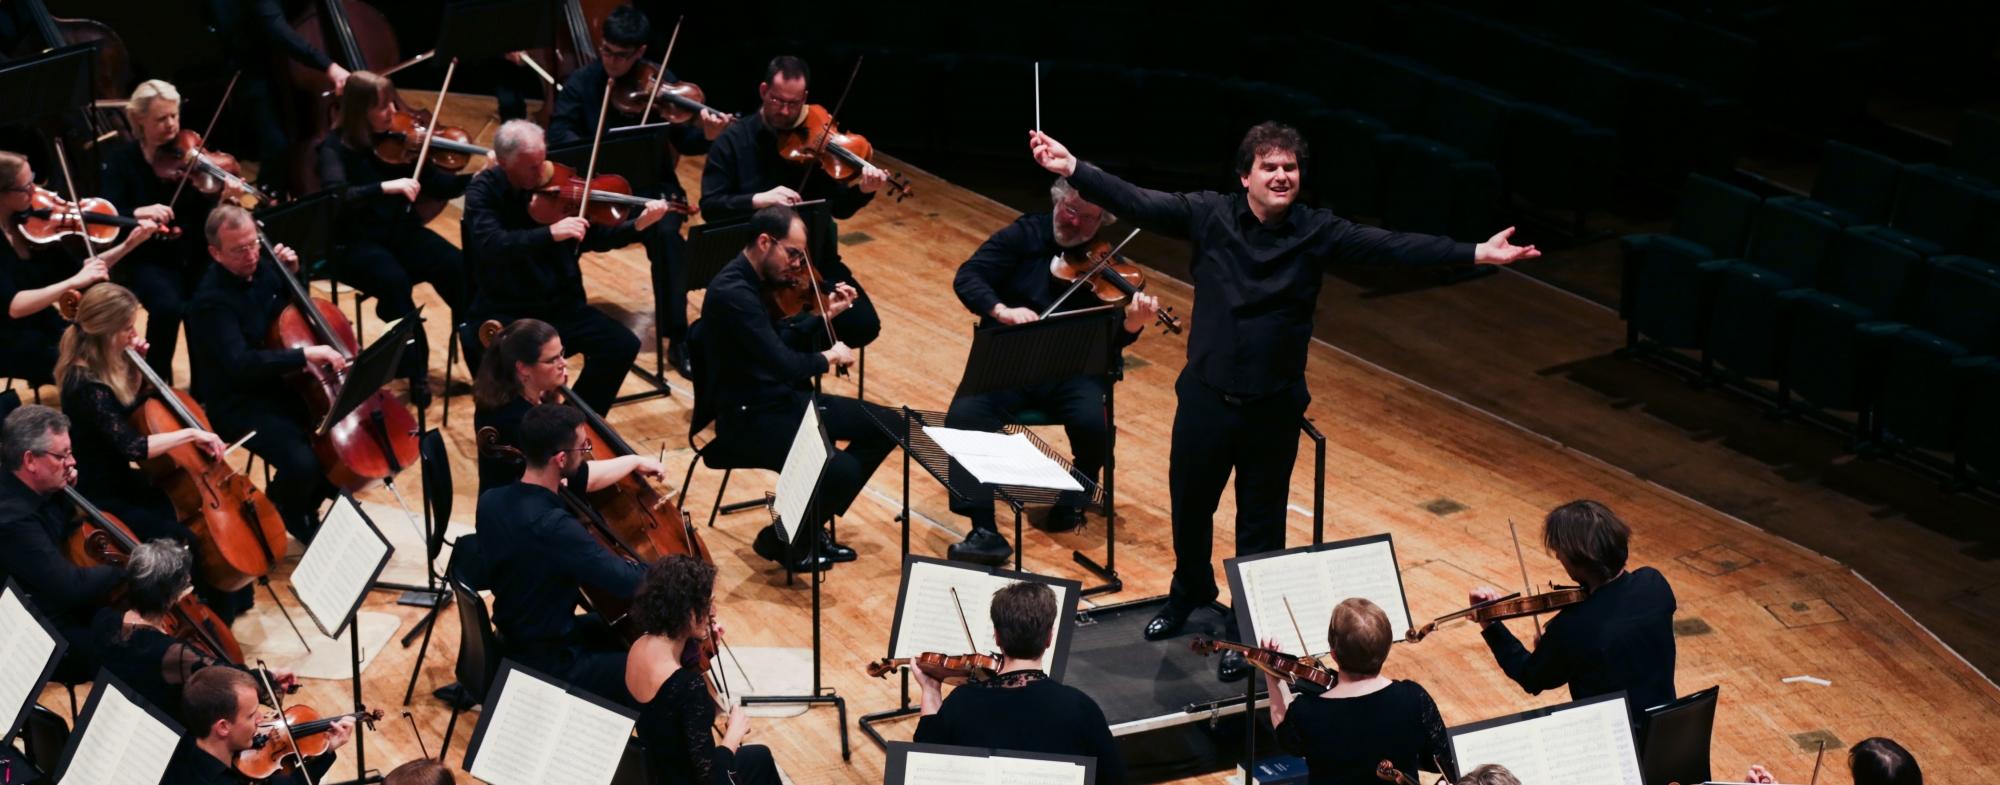 Bird's eye view of the orchestra, with the conductor's arms out wide.